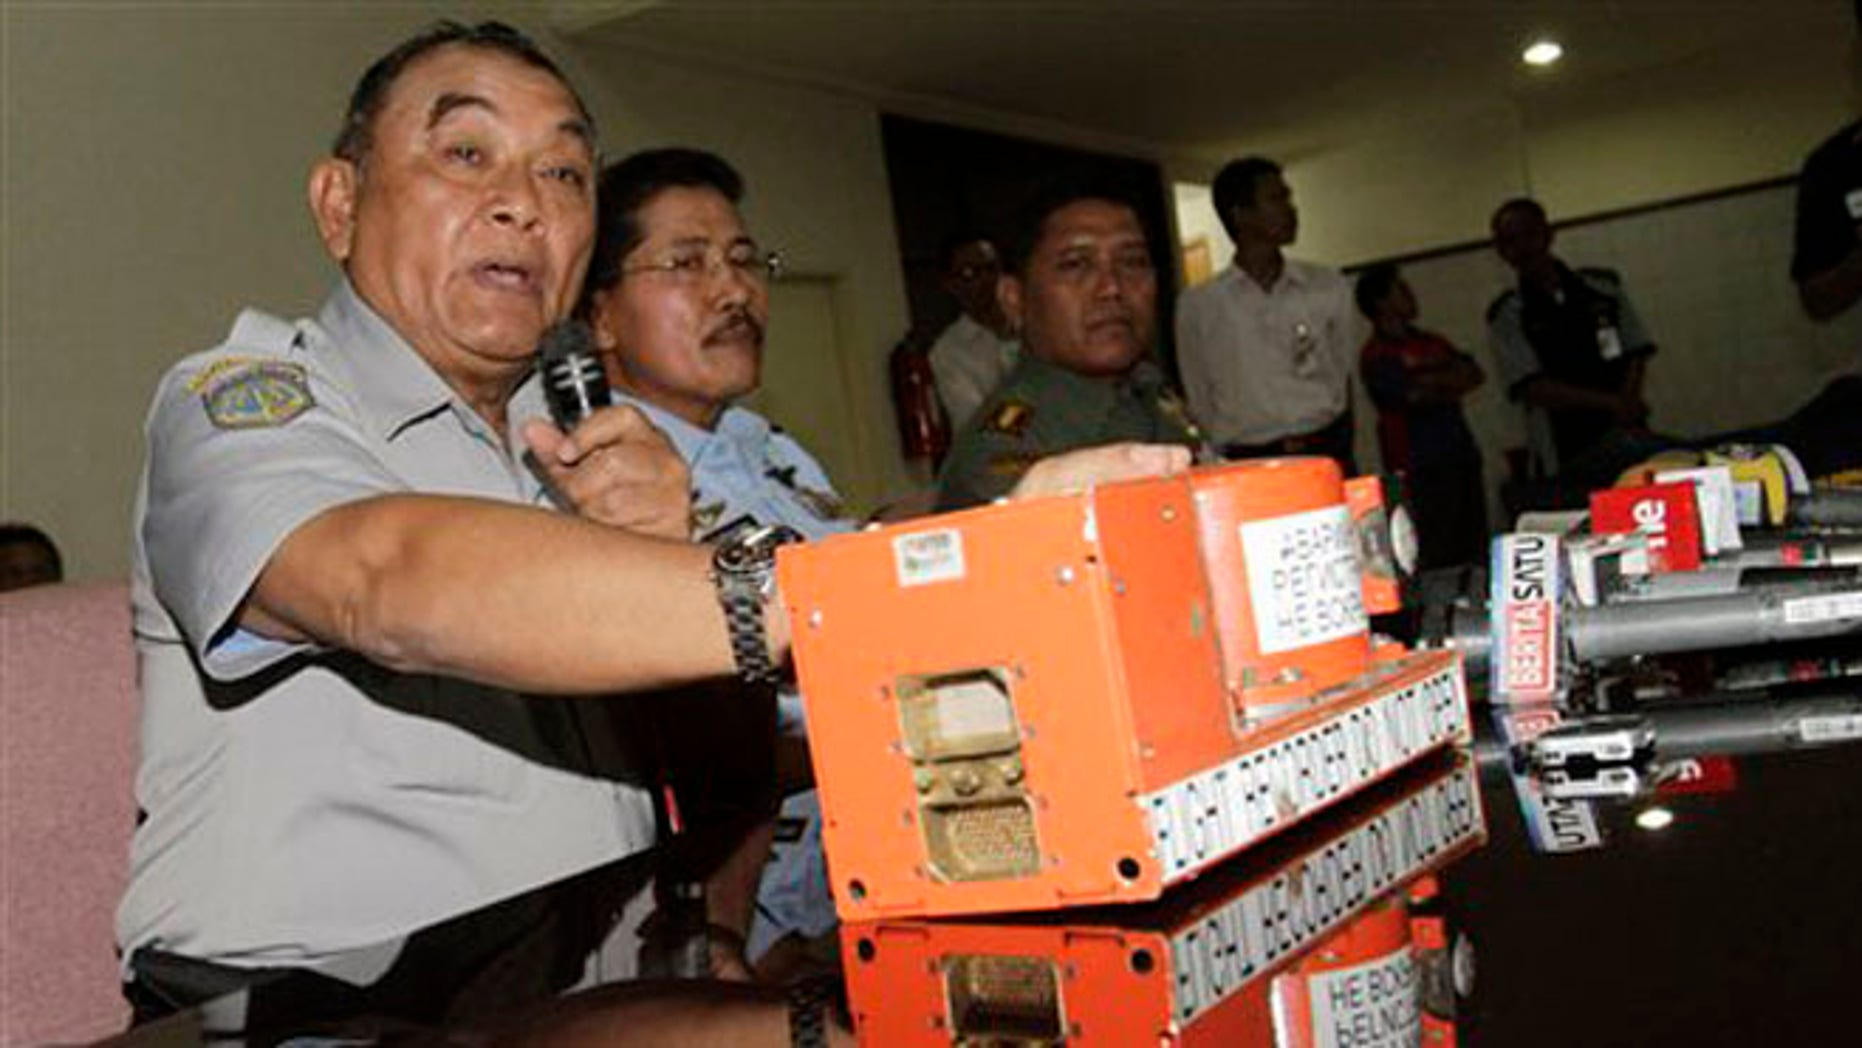 May 31, 2012: Indonesian National Transportation Safety Board chief Tatang Kurniadi with the flight data recorder of the crashed Sukhoi Superjet 100 speaks during a press conference in Jakarta, Indonesia.